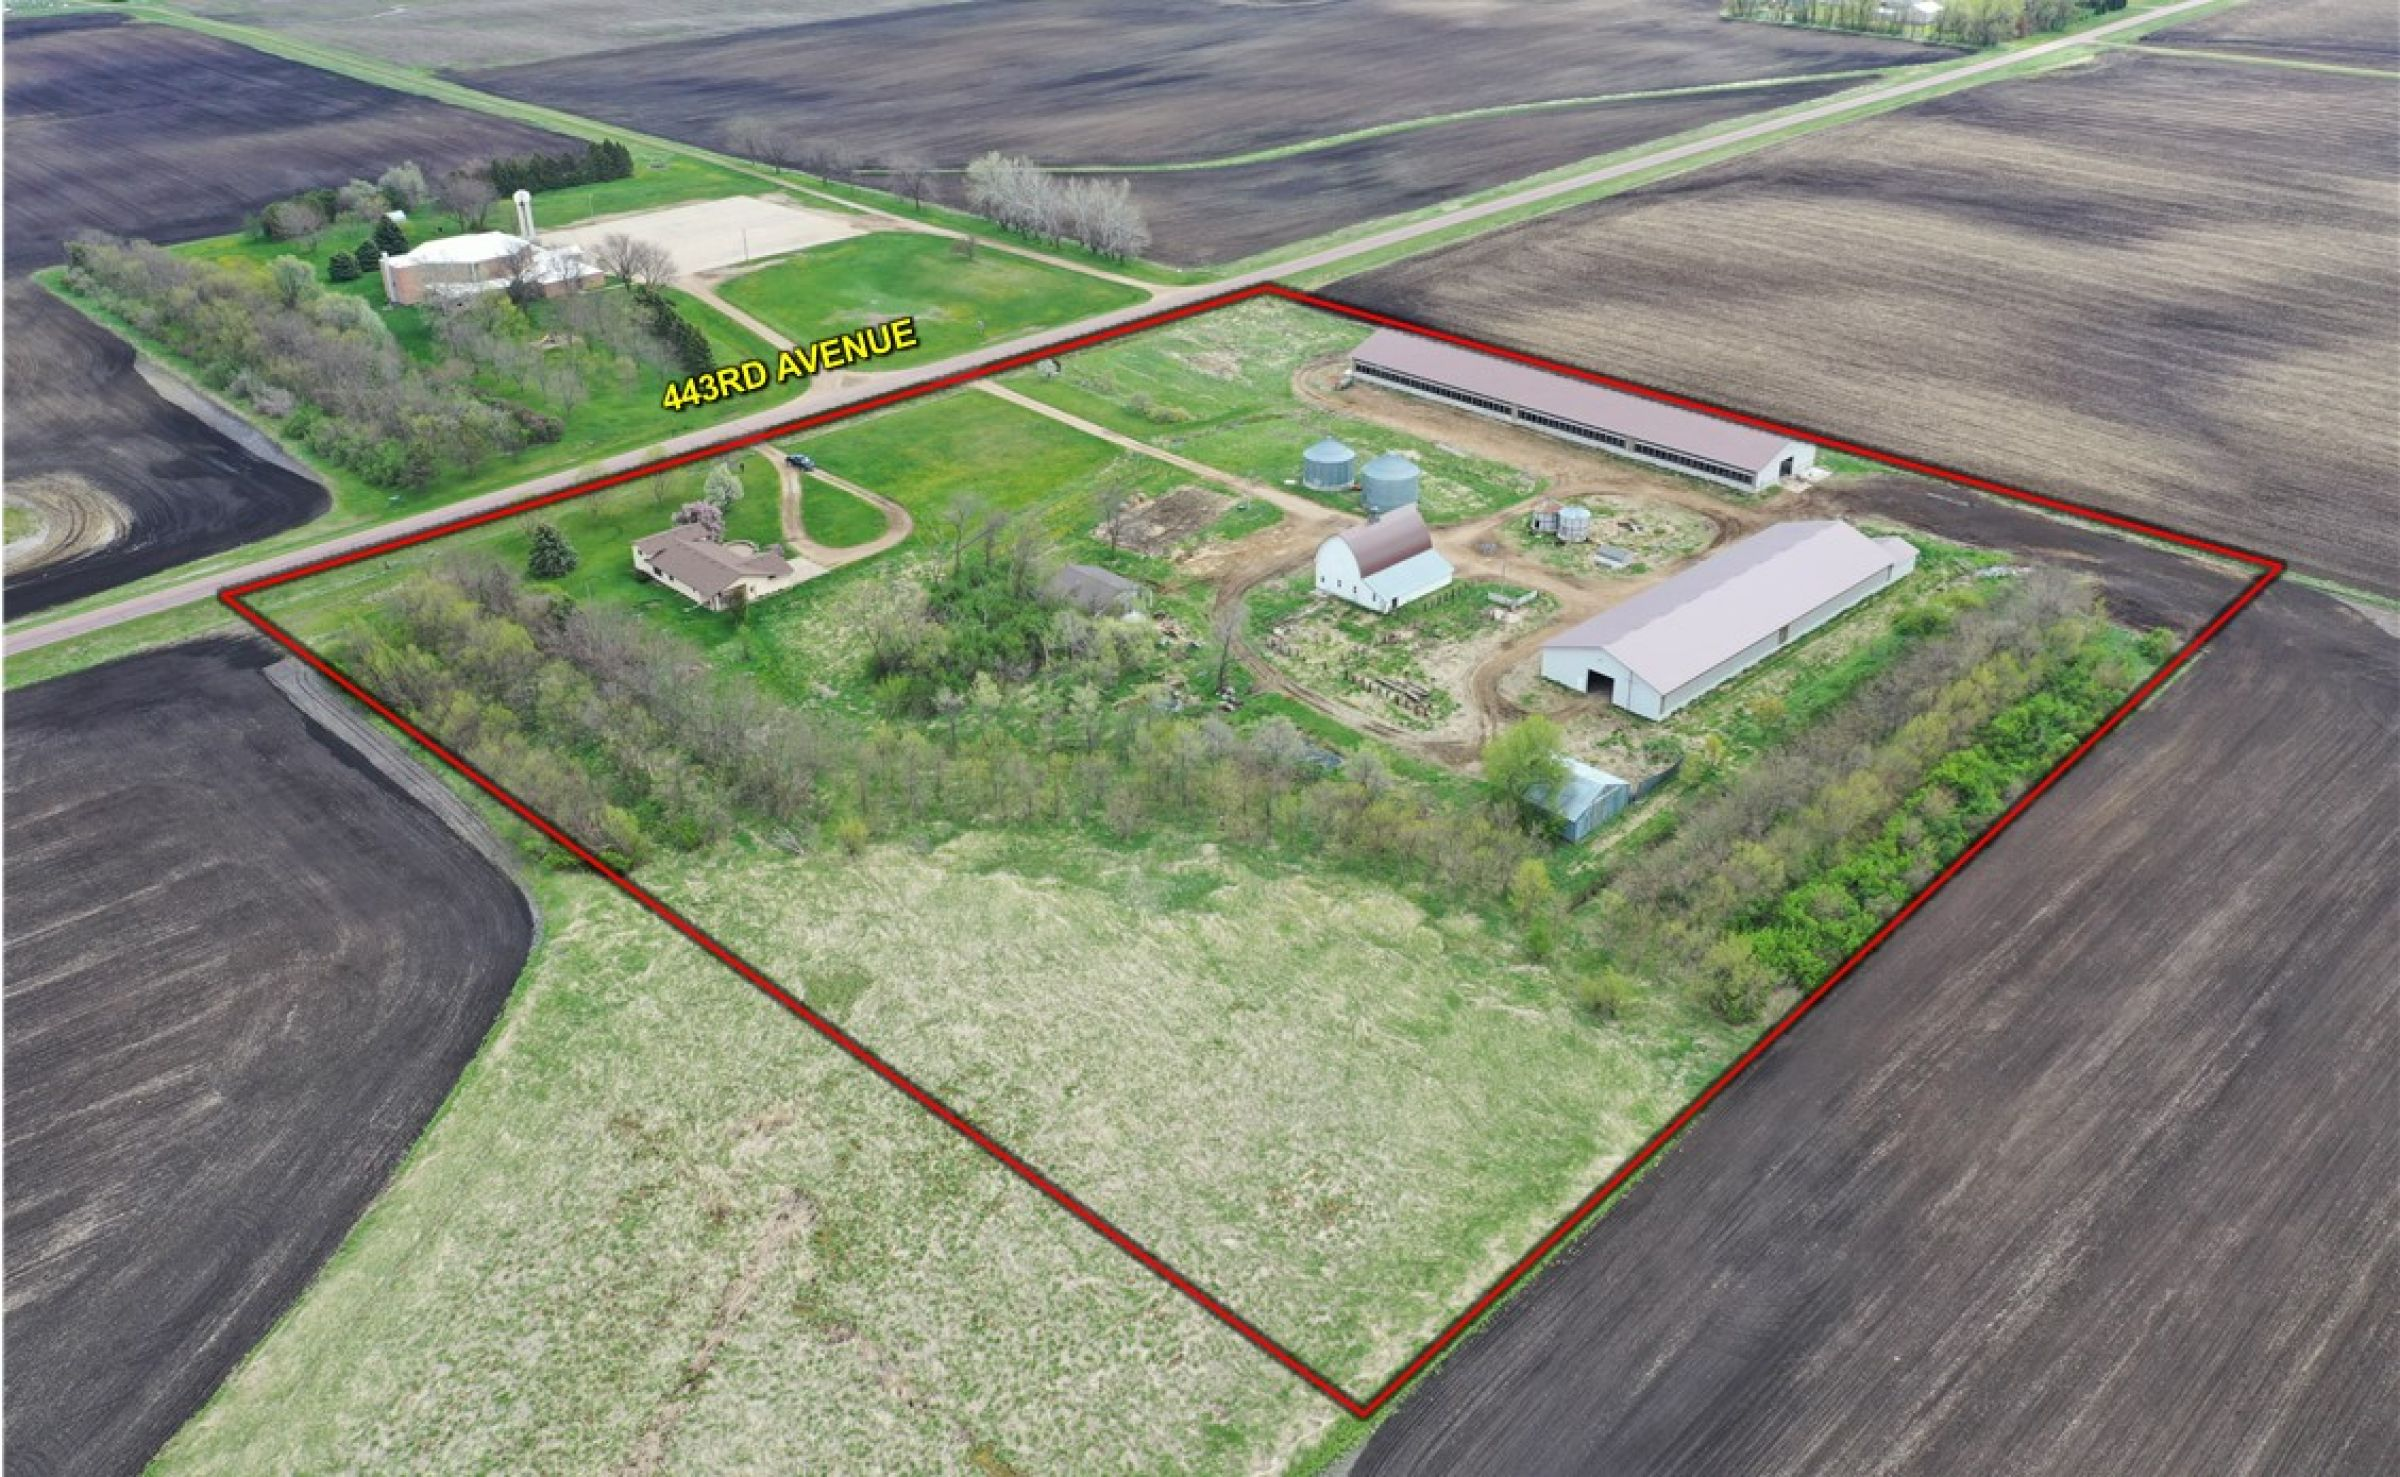 residential-auctions-land-turner-county-south-dakota-12-acres-listing-number-14971-2-2020-06-02-151910.jpg